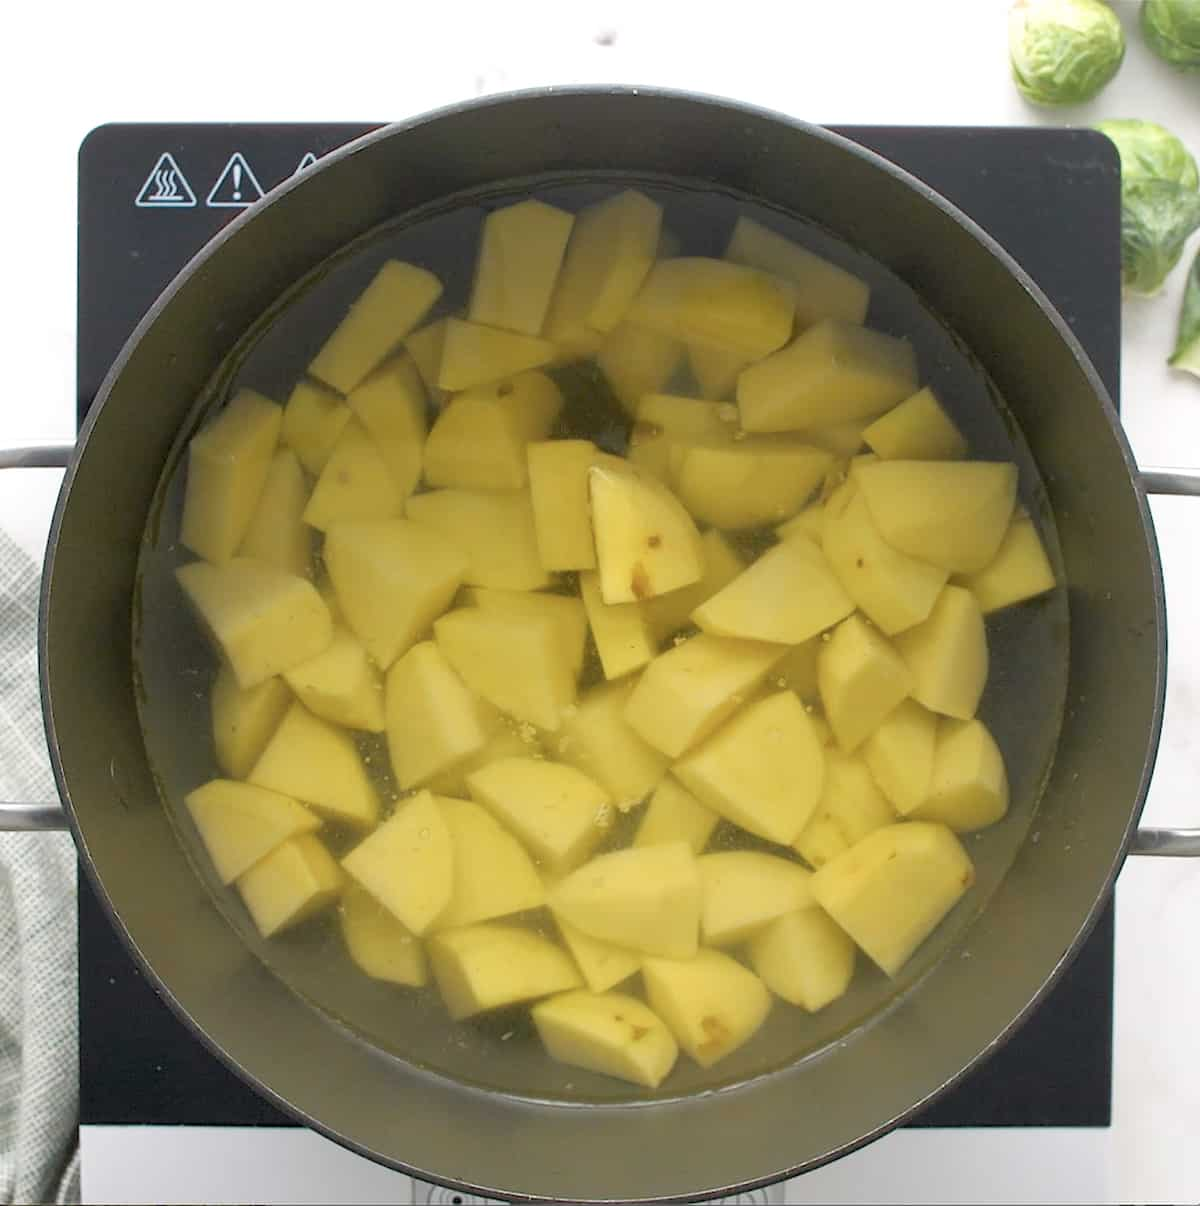 cubed potatoes in a pan of water